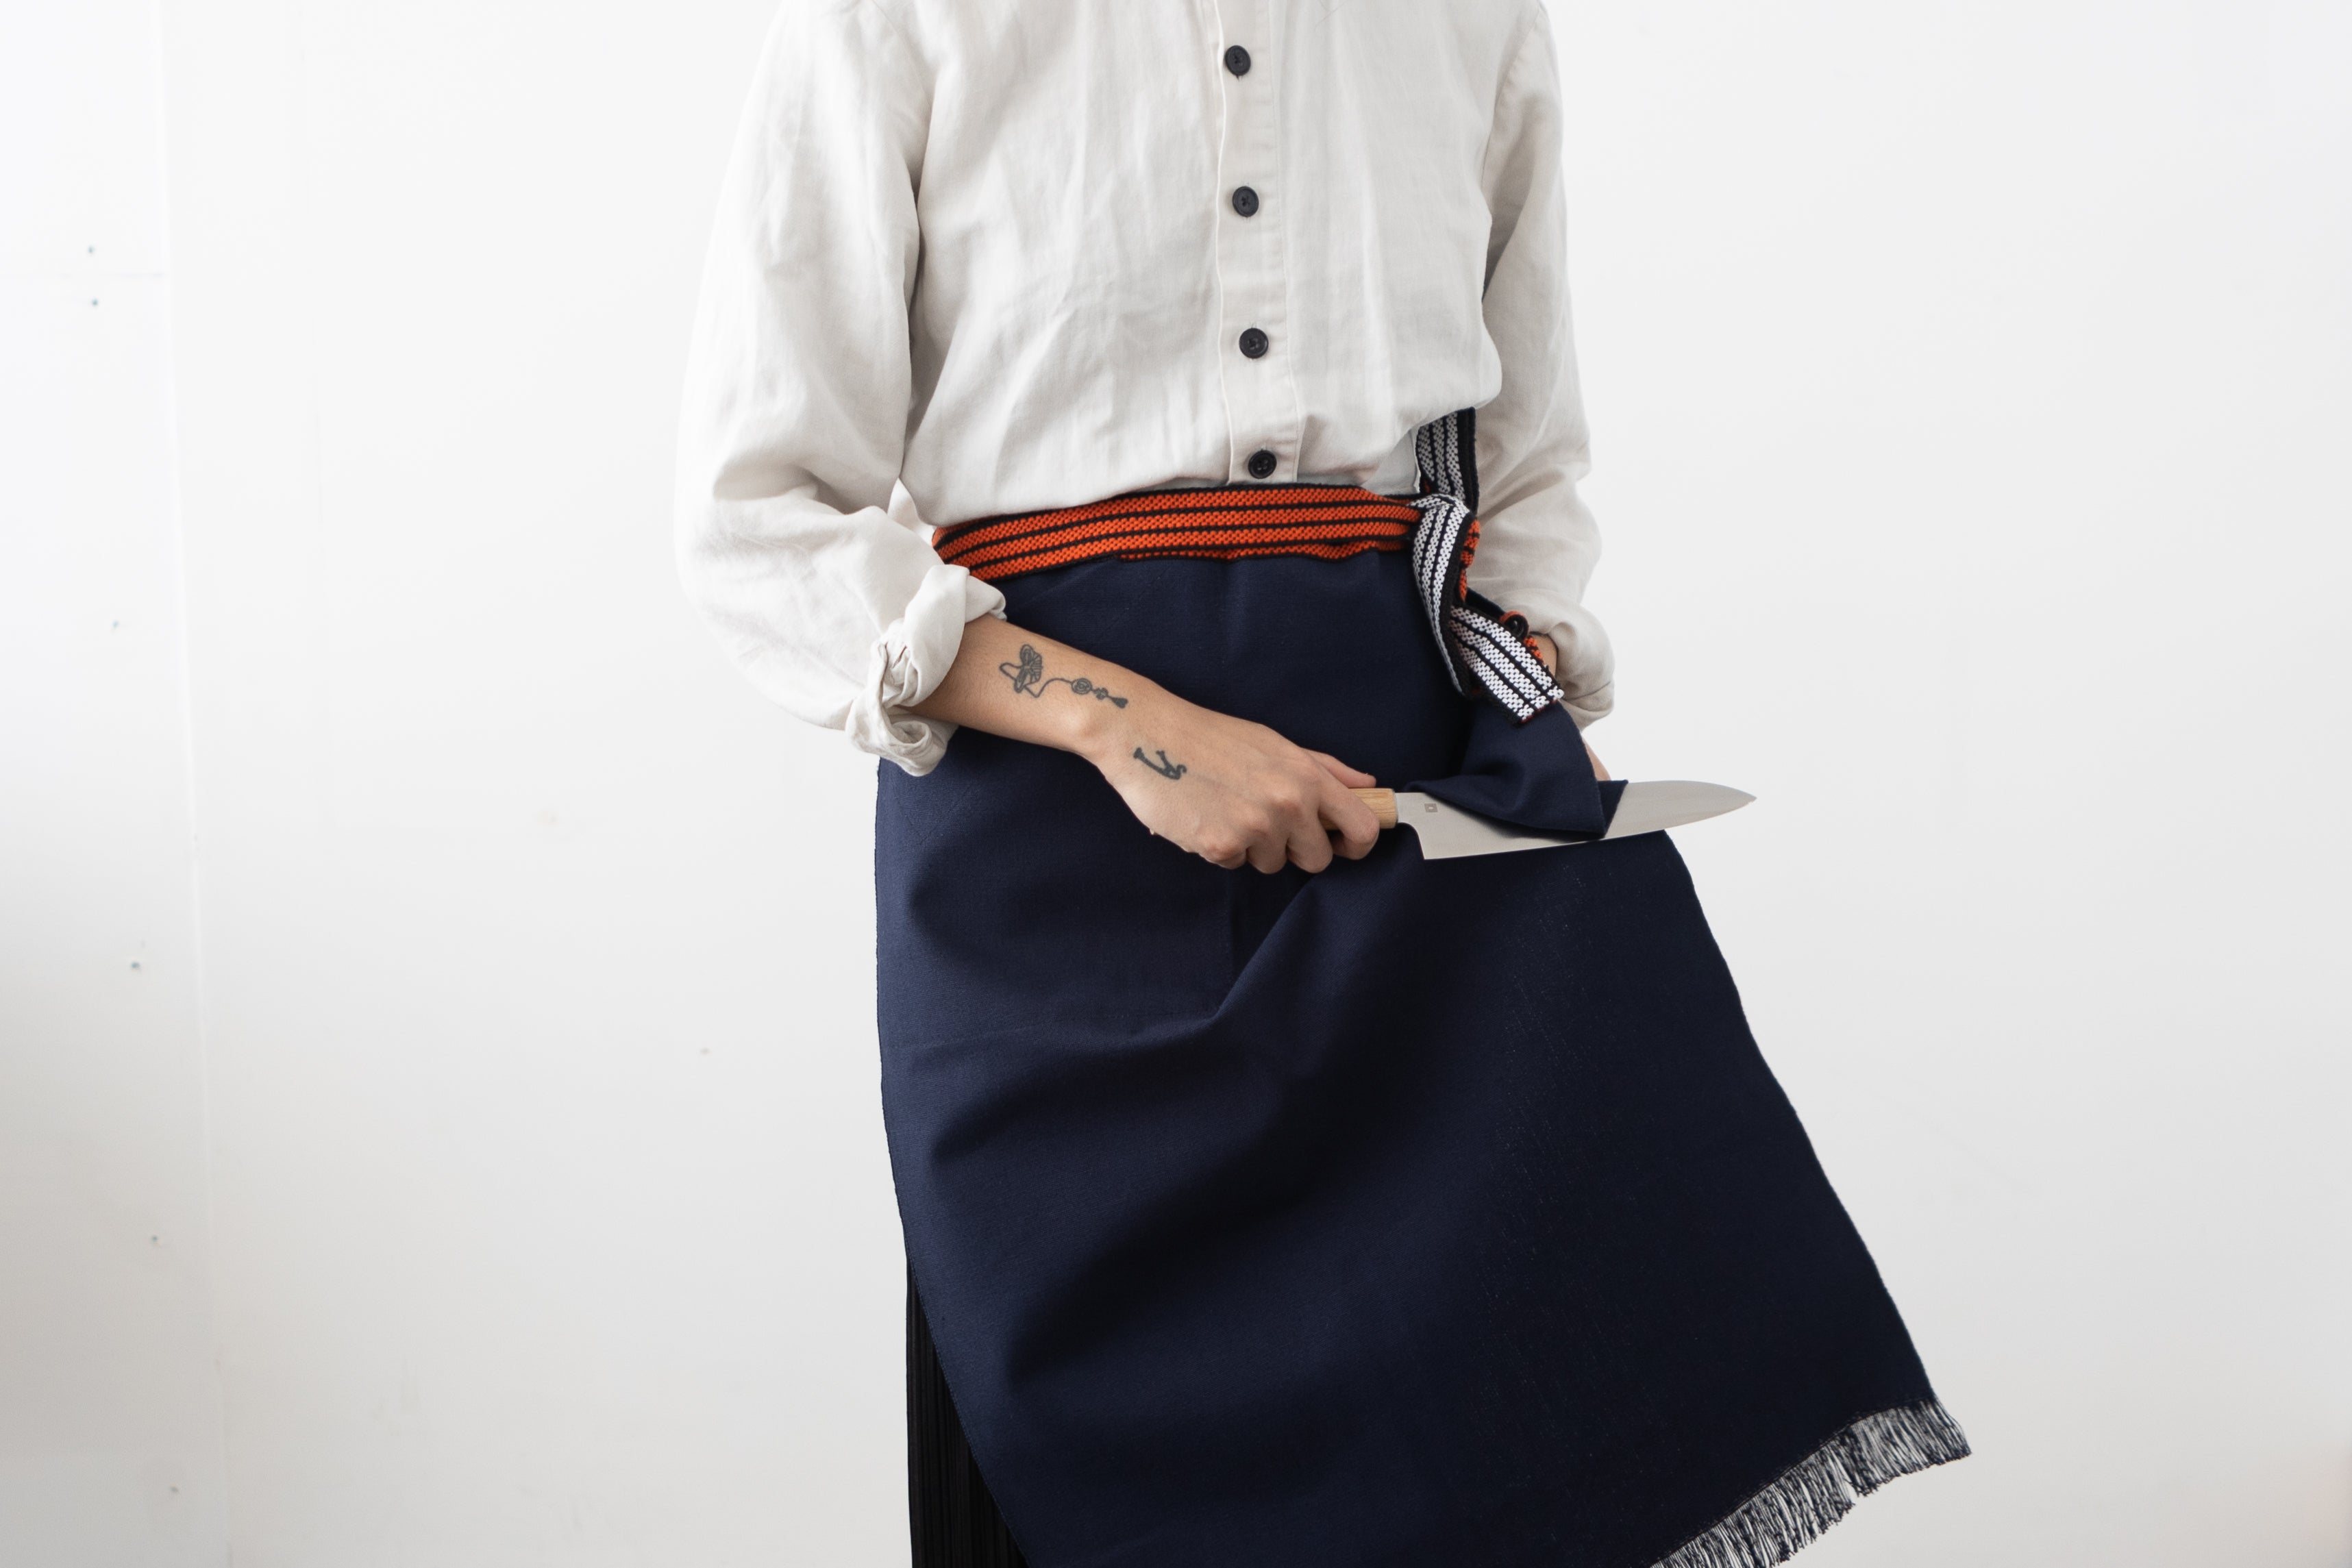 Apron and Knife